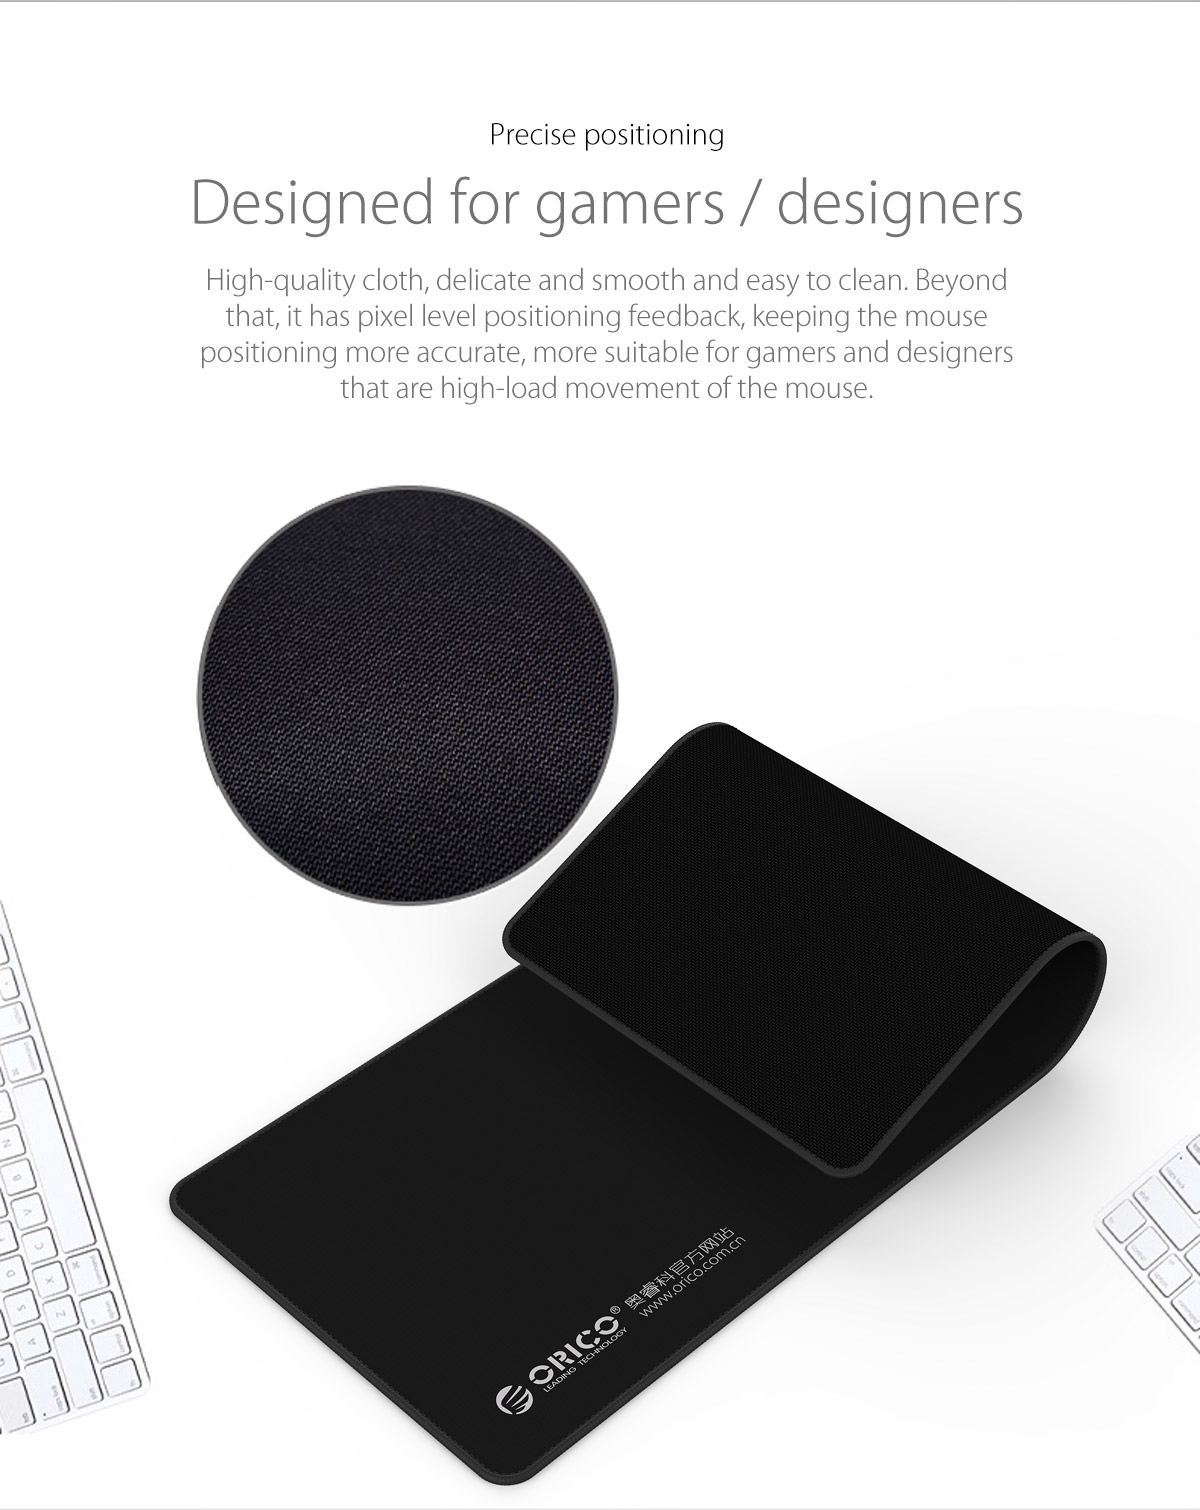 designed for gamers/designers